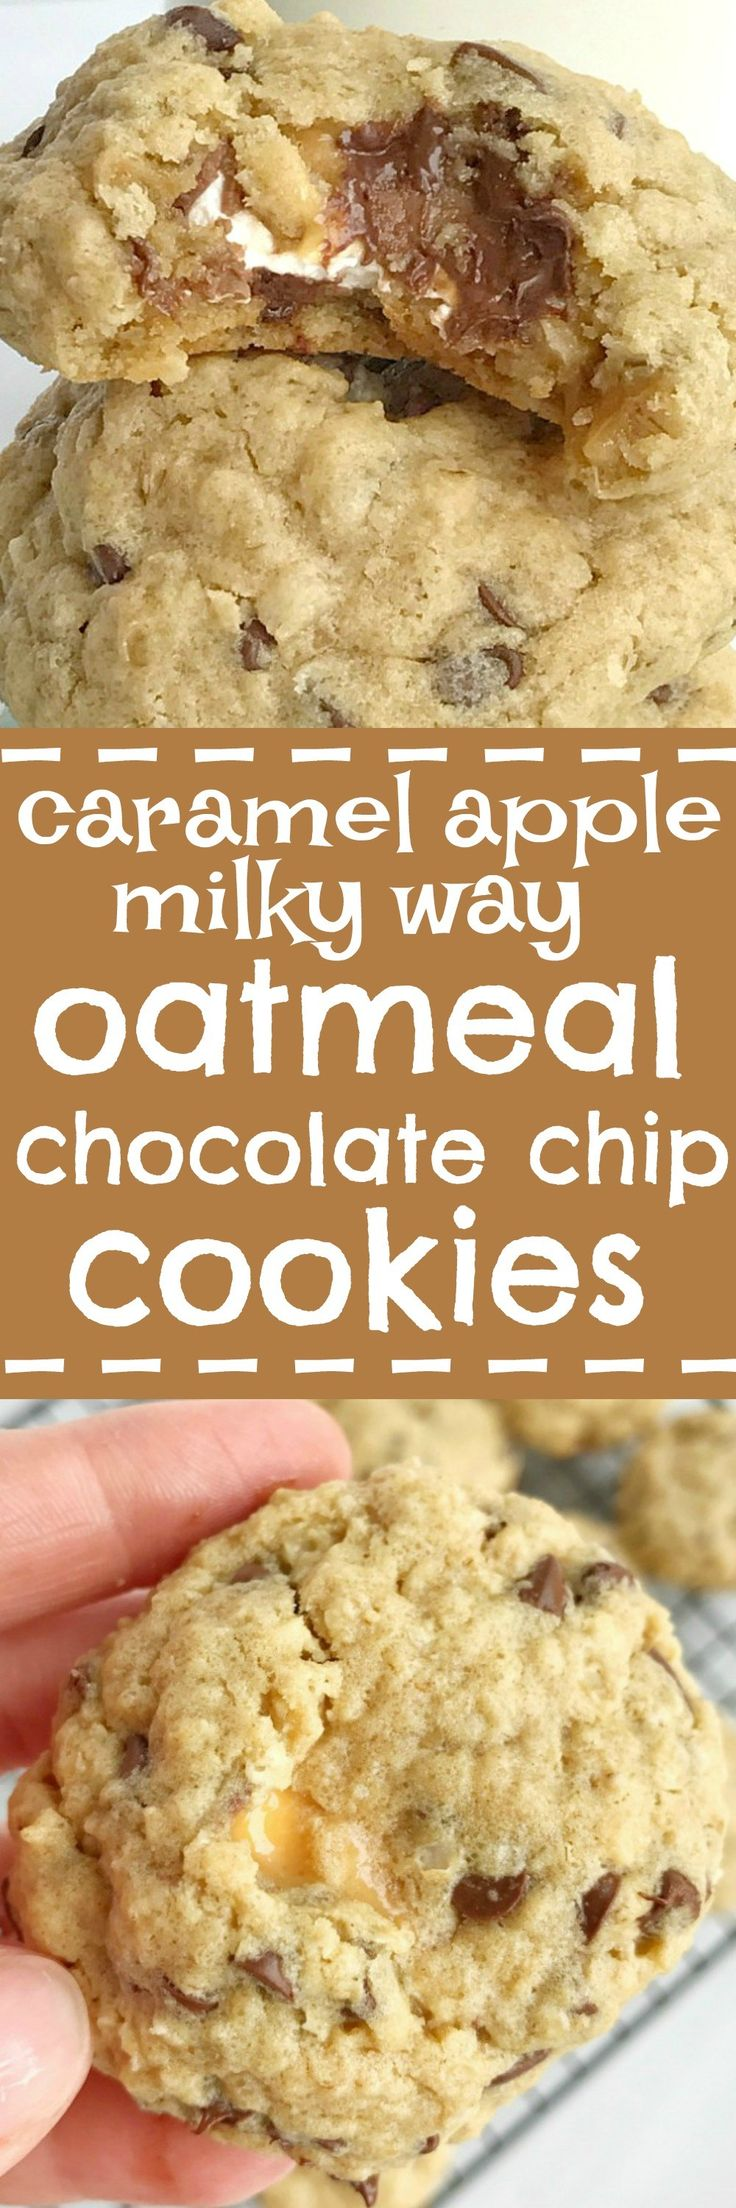 Caramel apple milky way oatmeal peanut butter chocolate chip cookies are three cookies in one! Oatmeal & peanut butter cookies loaded with chocolate chips and stuffed with a caramel apple milky way. These are the yummiest cookies I've ever had. You can't go wrong | togetherasfamily.com